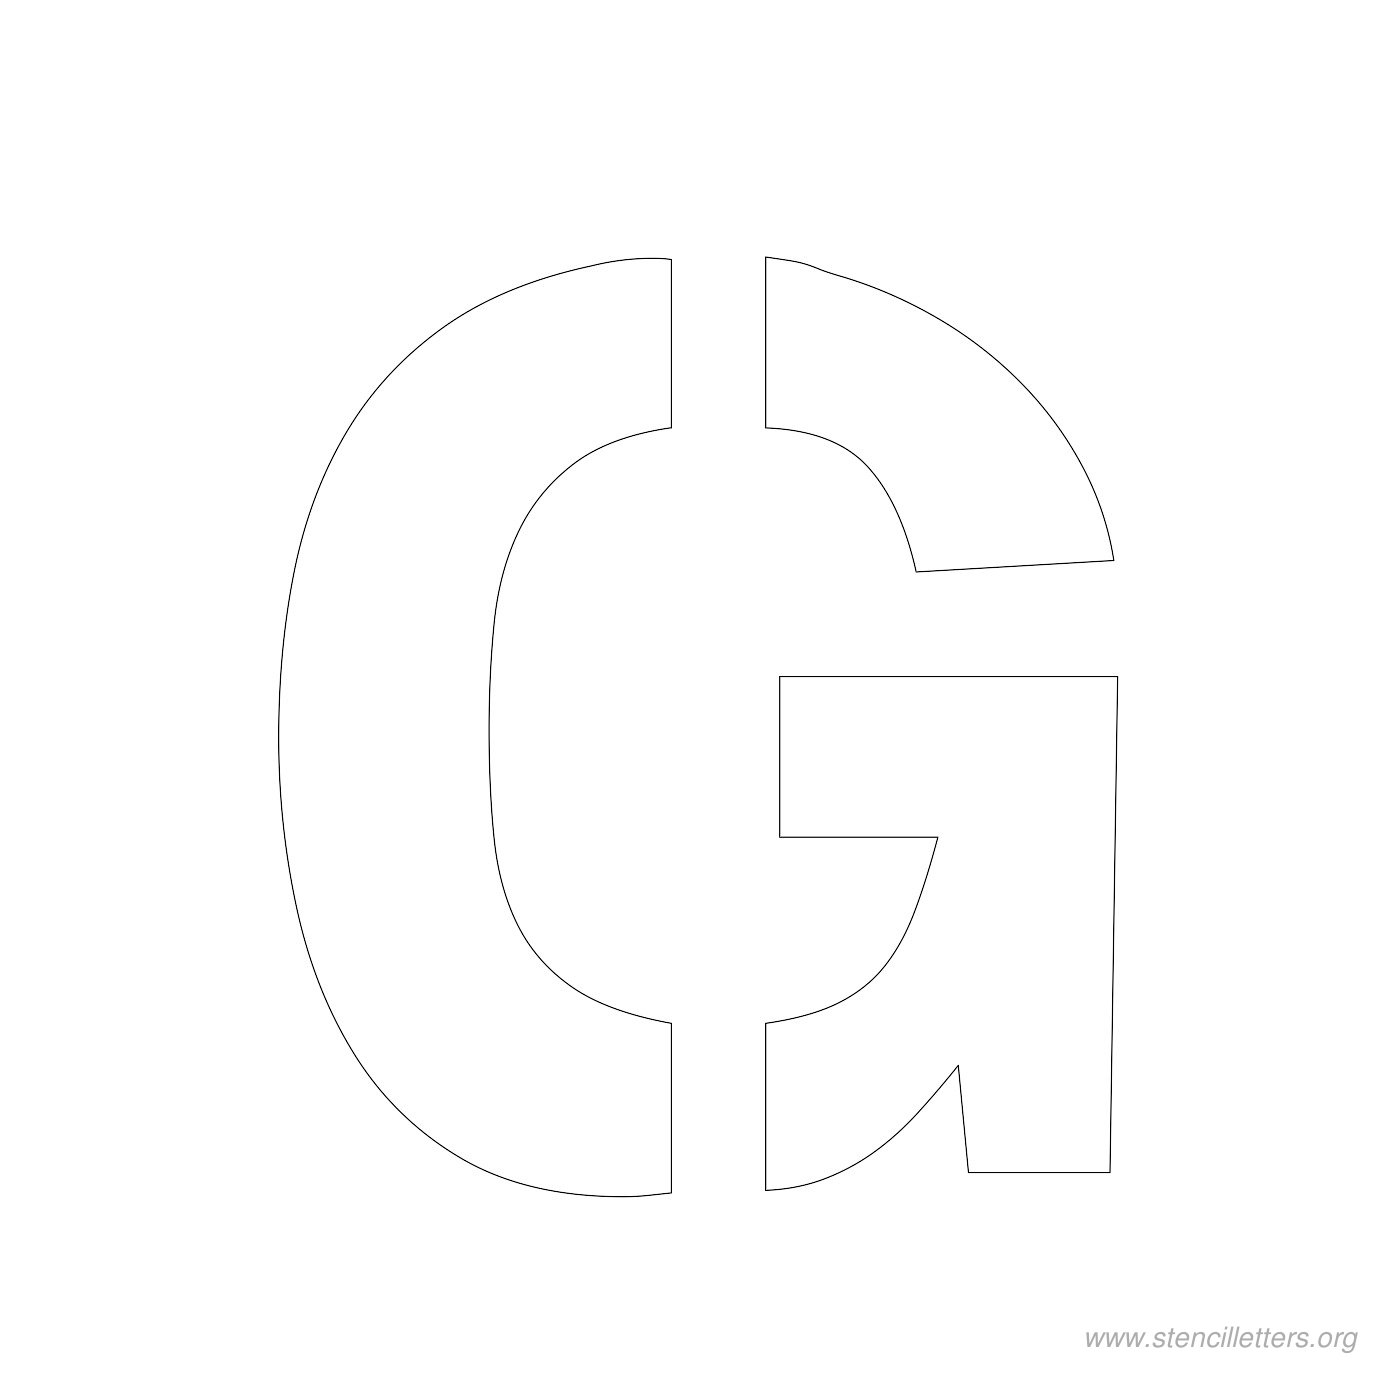 3-inch-letter-stencils-printable_85089  Inch Letter Templates on basic cover, sample request, sample business,